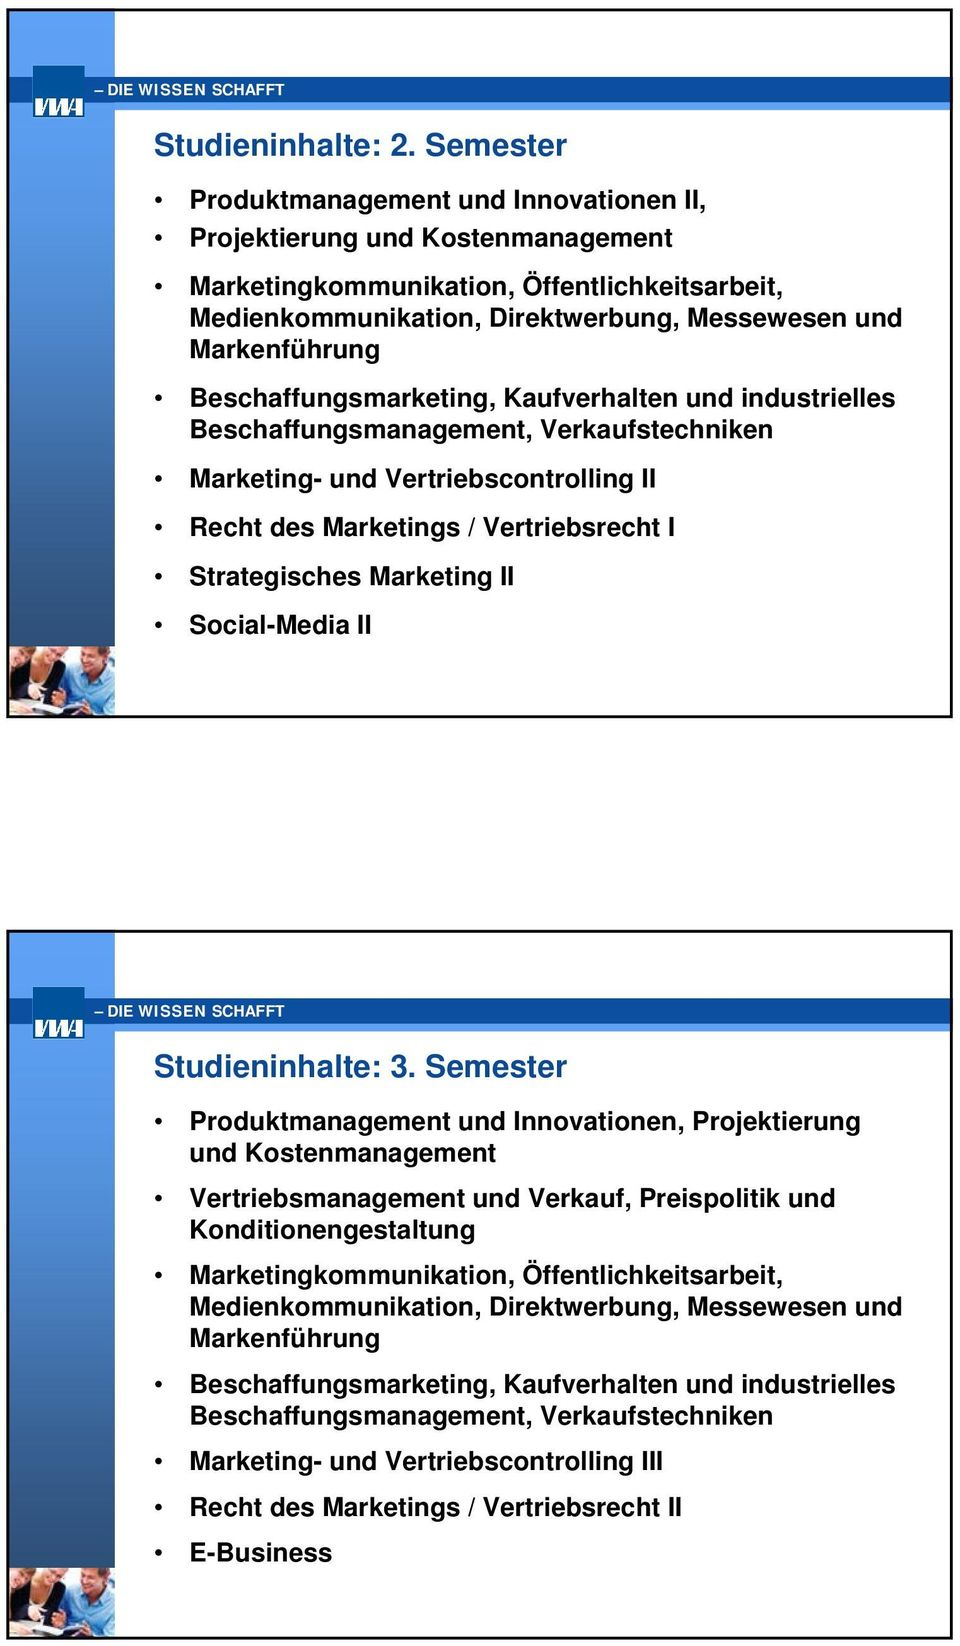 Beschaffungsmarketing, Kaufverhalten und industrielles Beschaffungsmanagement, Verkaufstechniken Marketing- und Vertriebscontrolling II Recht des Marketings / Vertriebsrecht I Strategisches Marketing